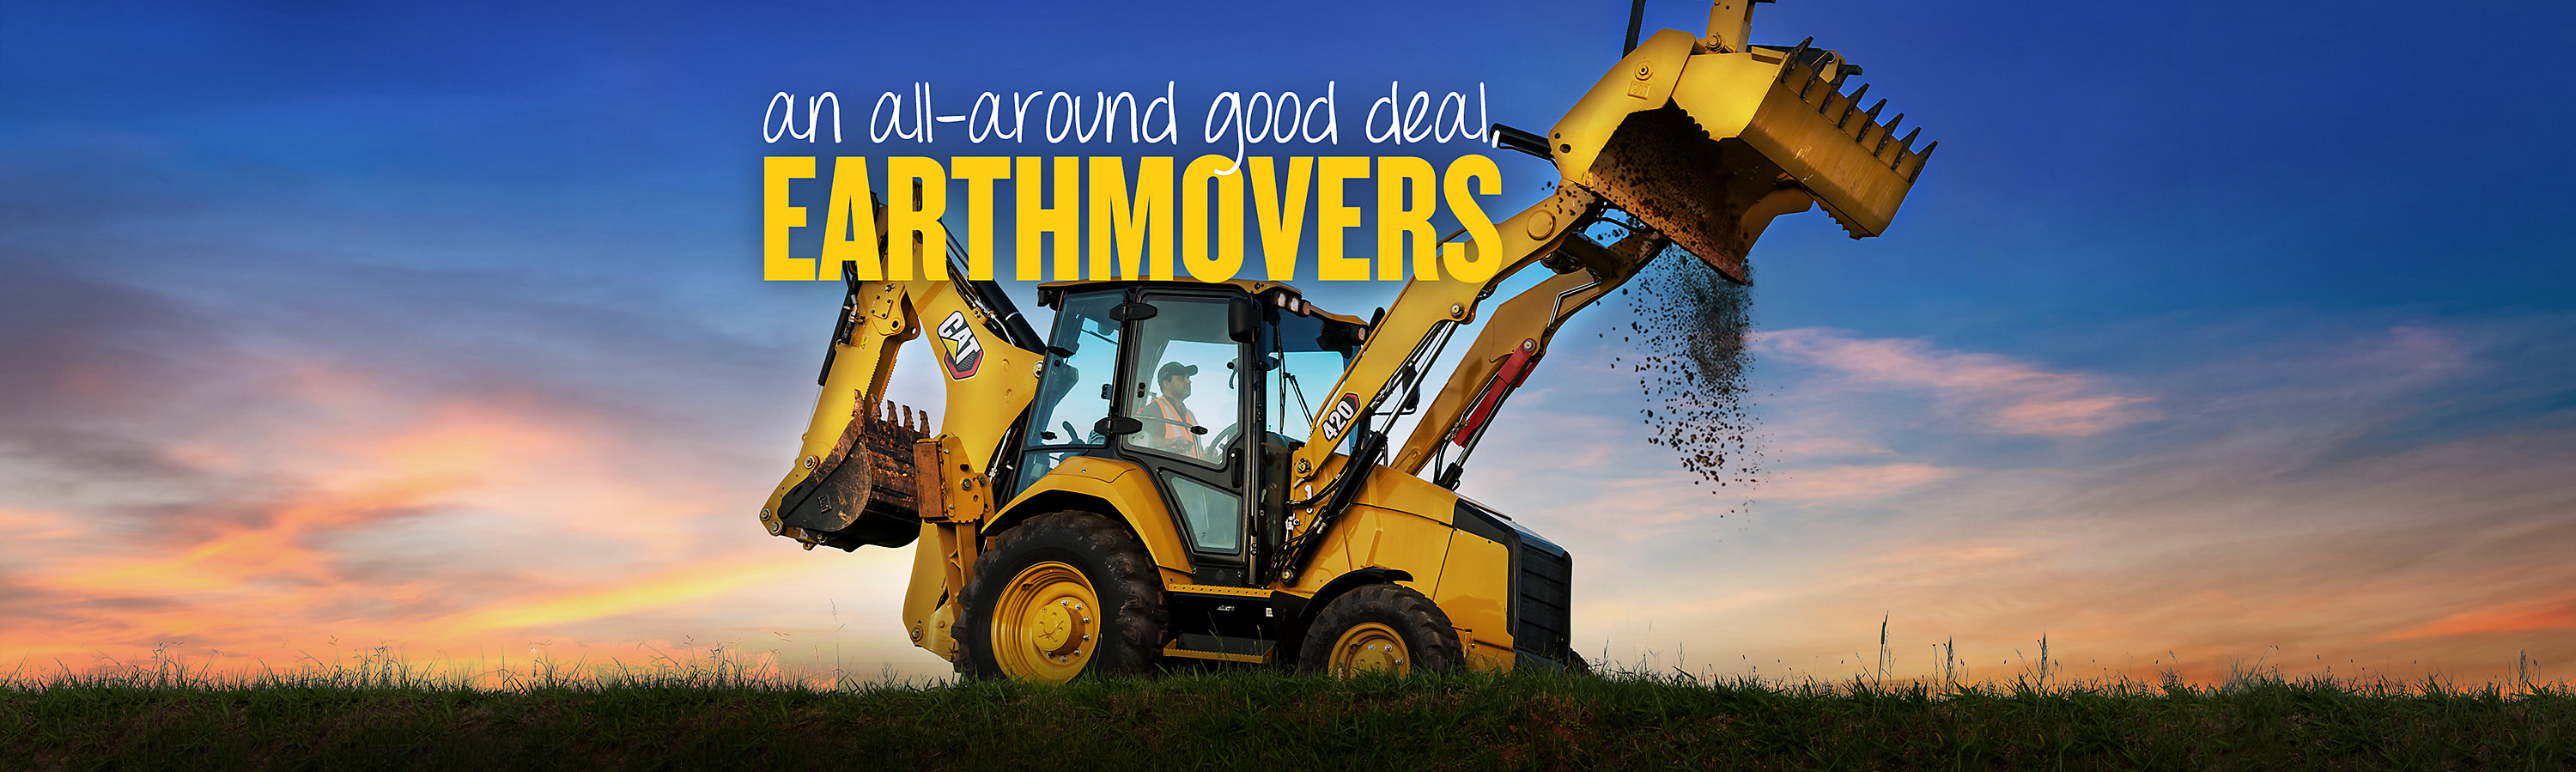 Explore offers on Cat backhoe loaders for sale.